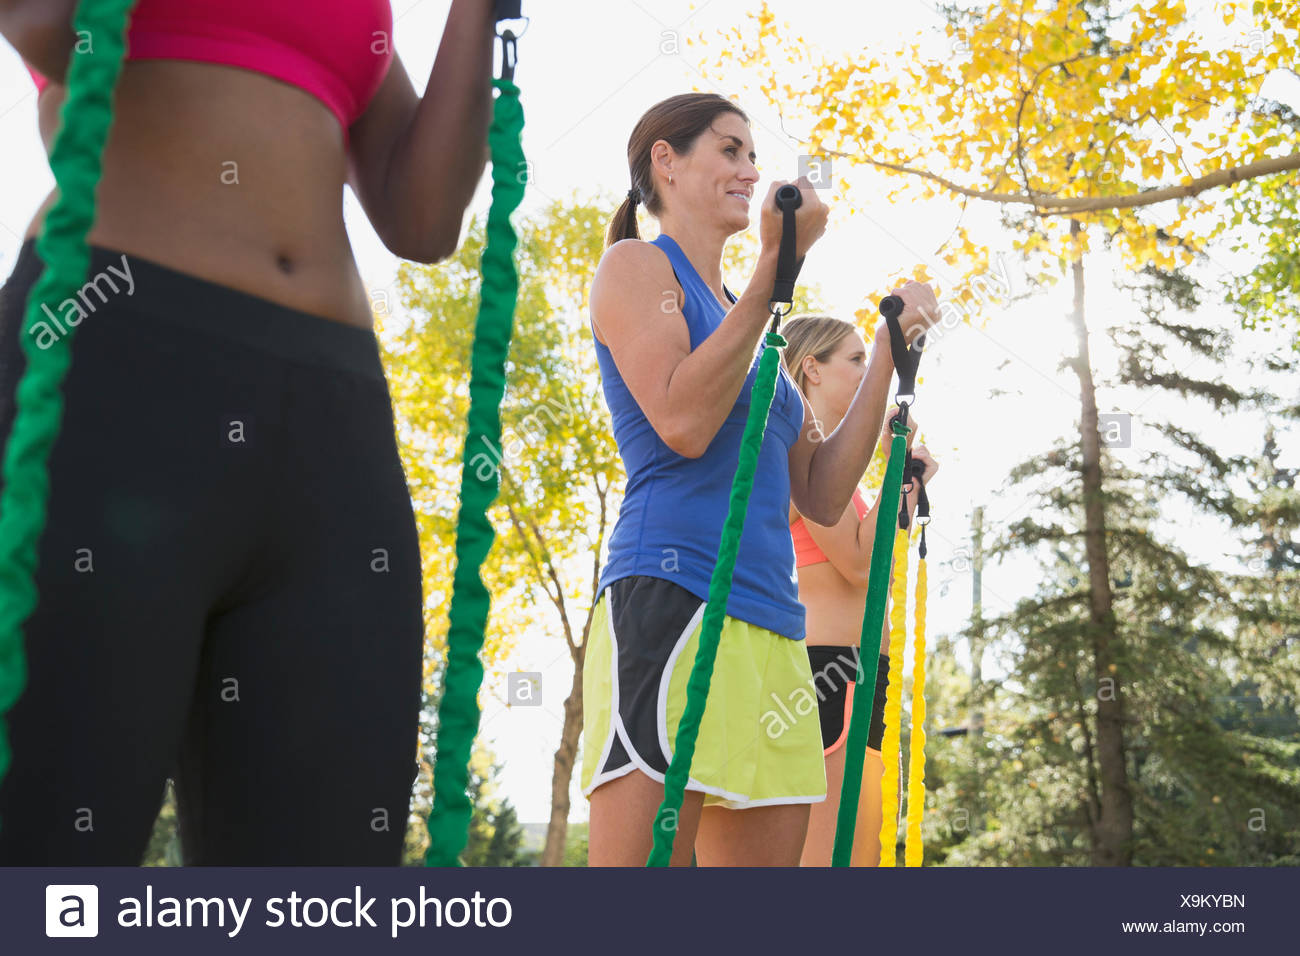 Women using resistance bands at outdoor fitness class. - Stock Image